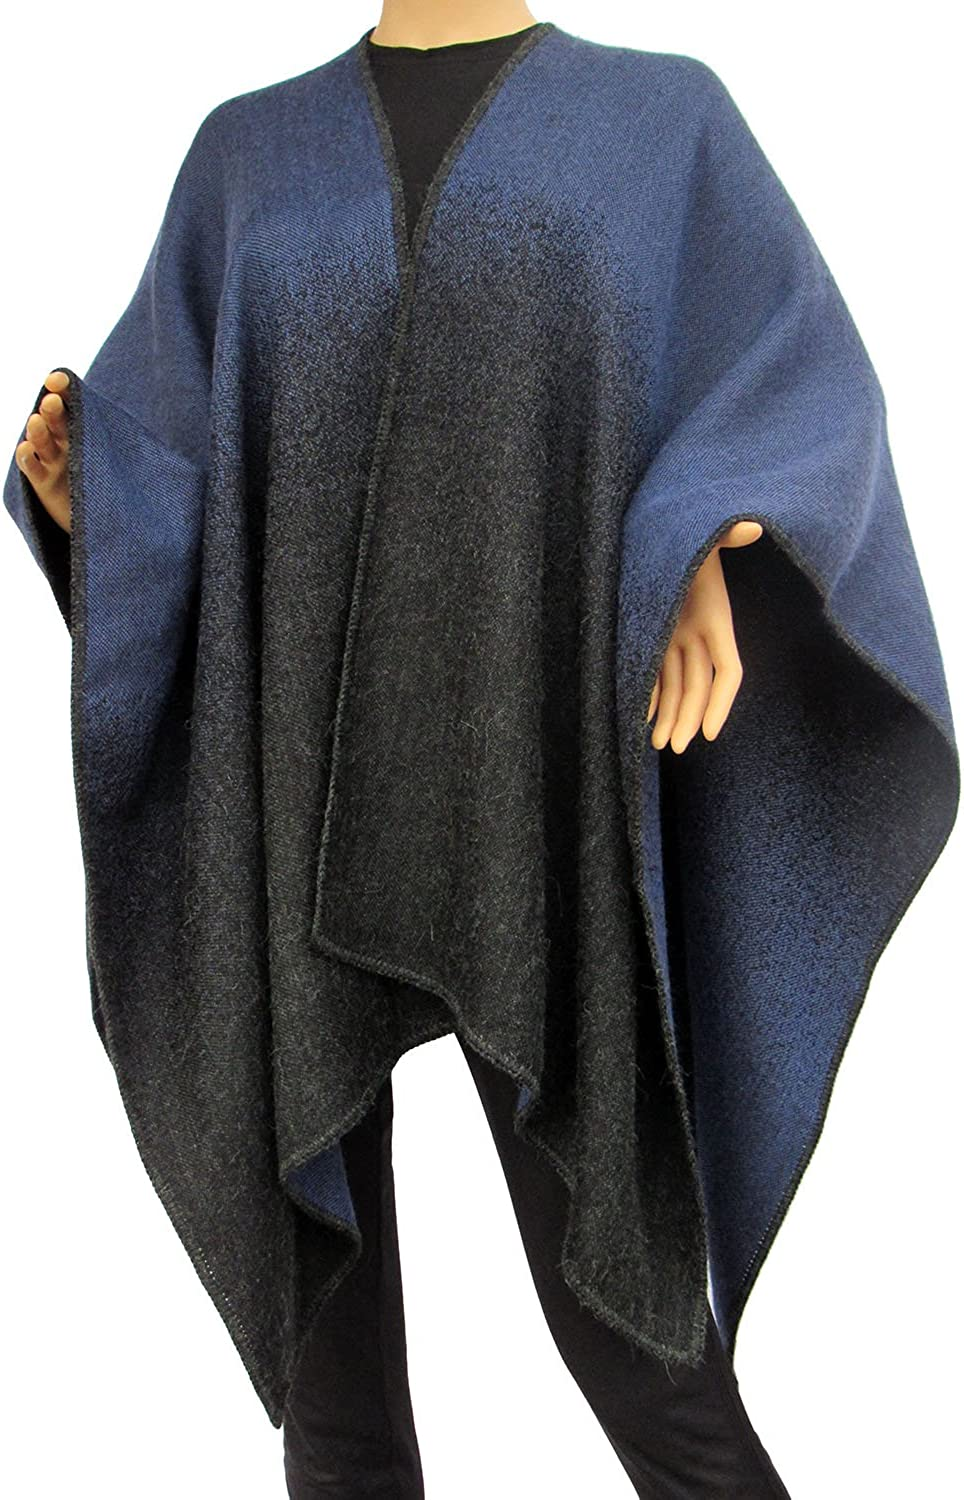 Charcoal and bluee Gradient Reversible Alpaca Womens Winter Knitted Poncho Capes Shawl Sweater ...